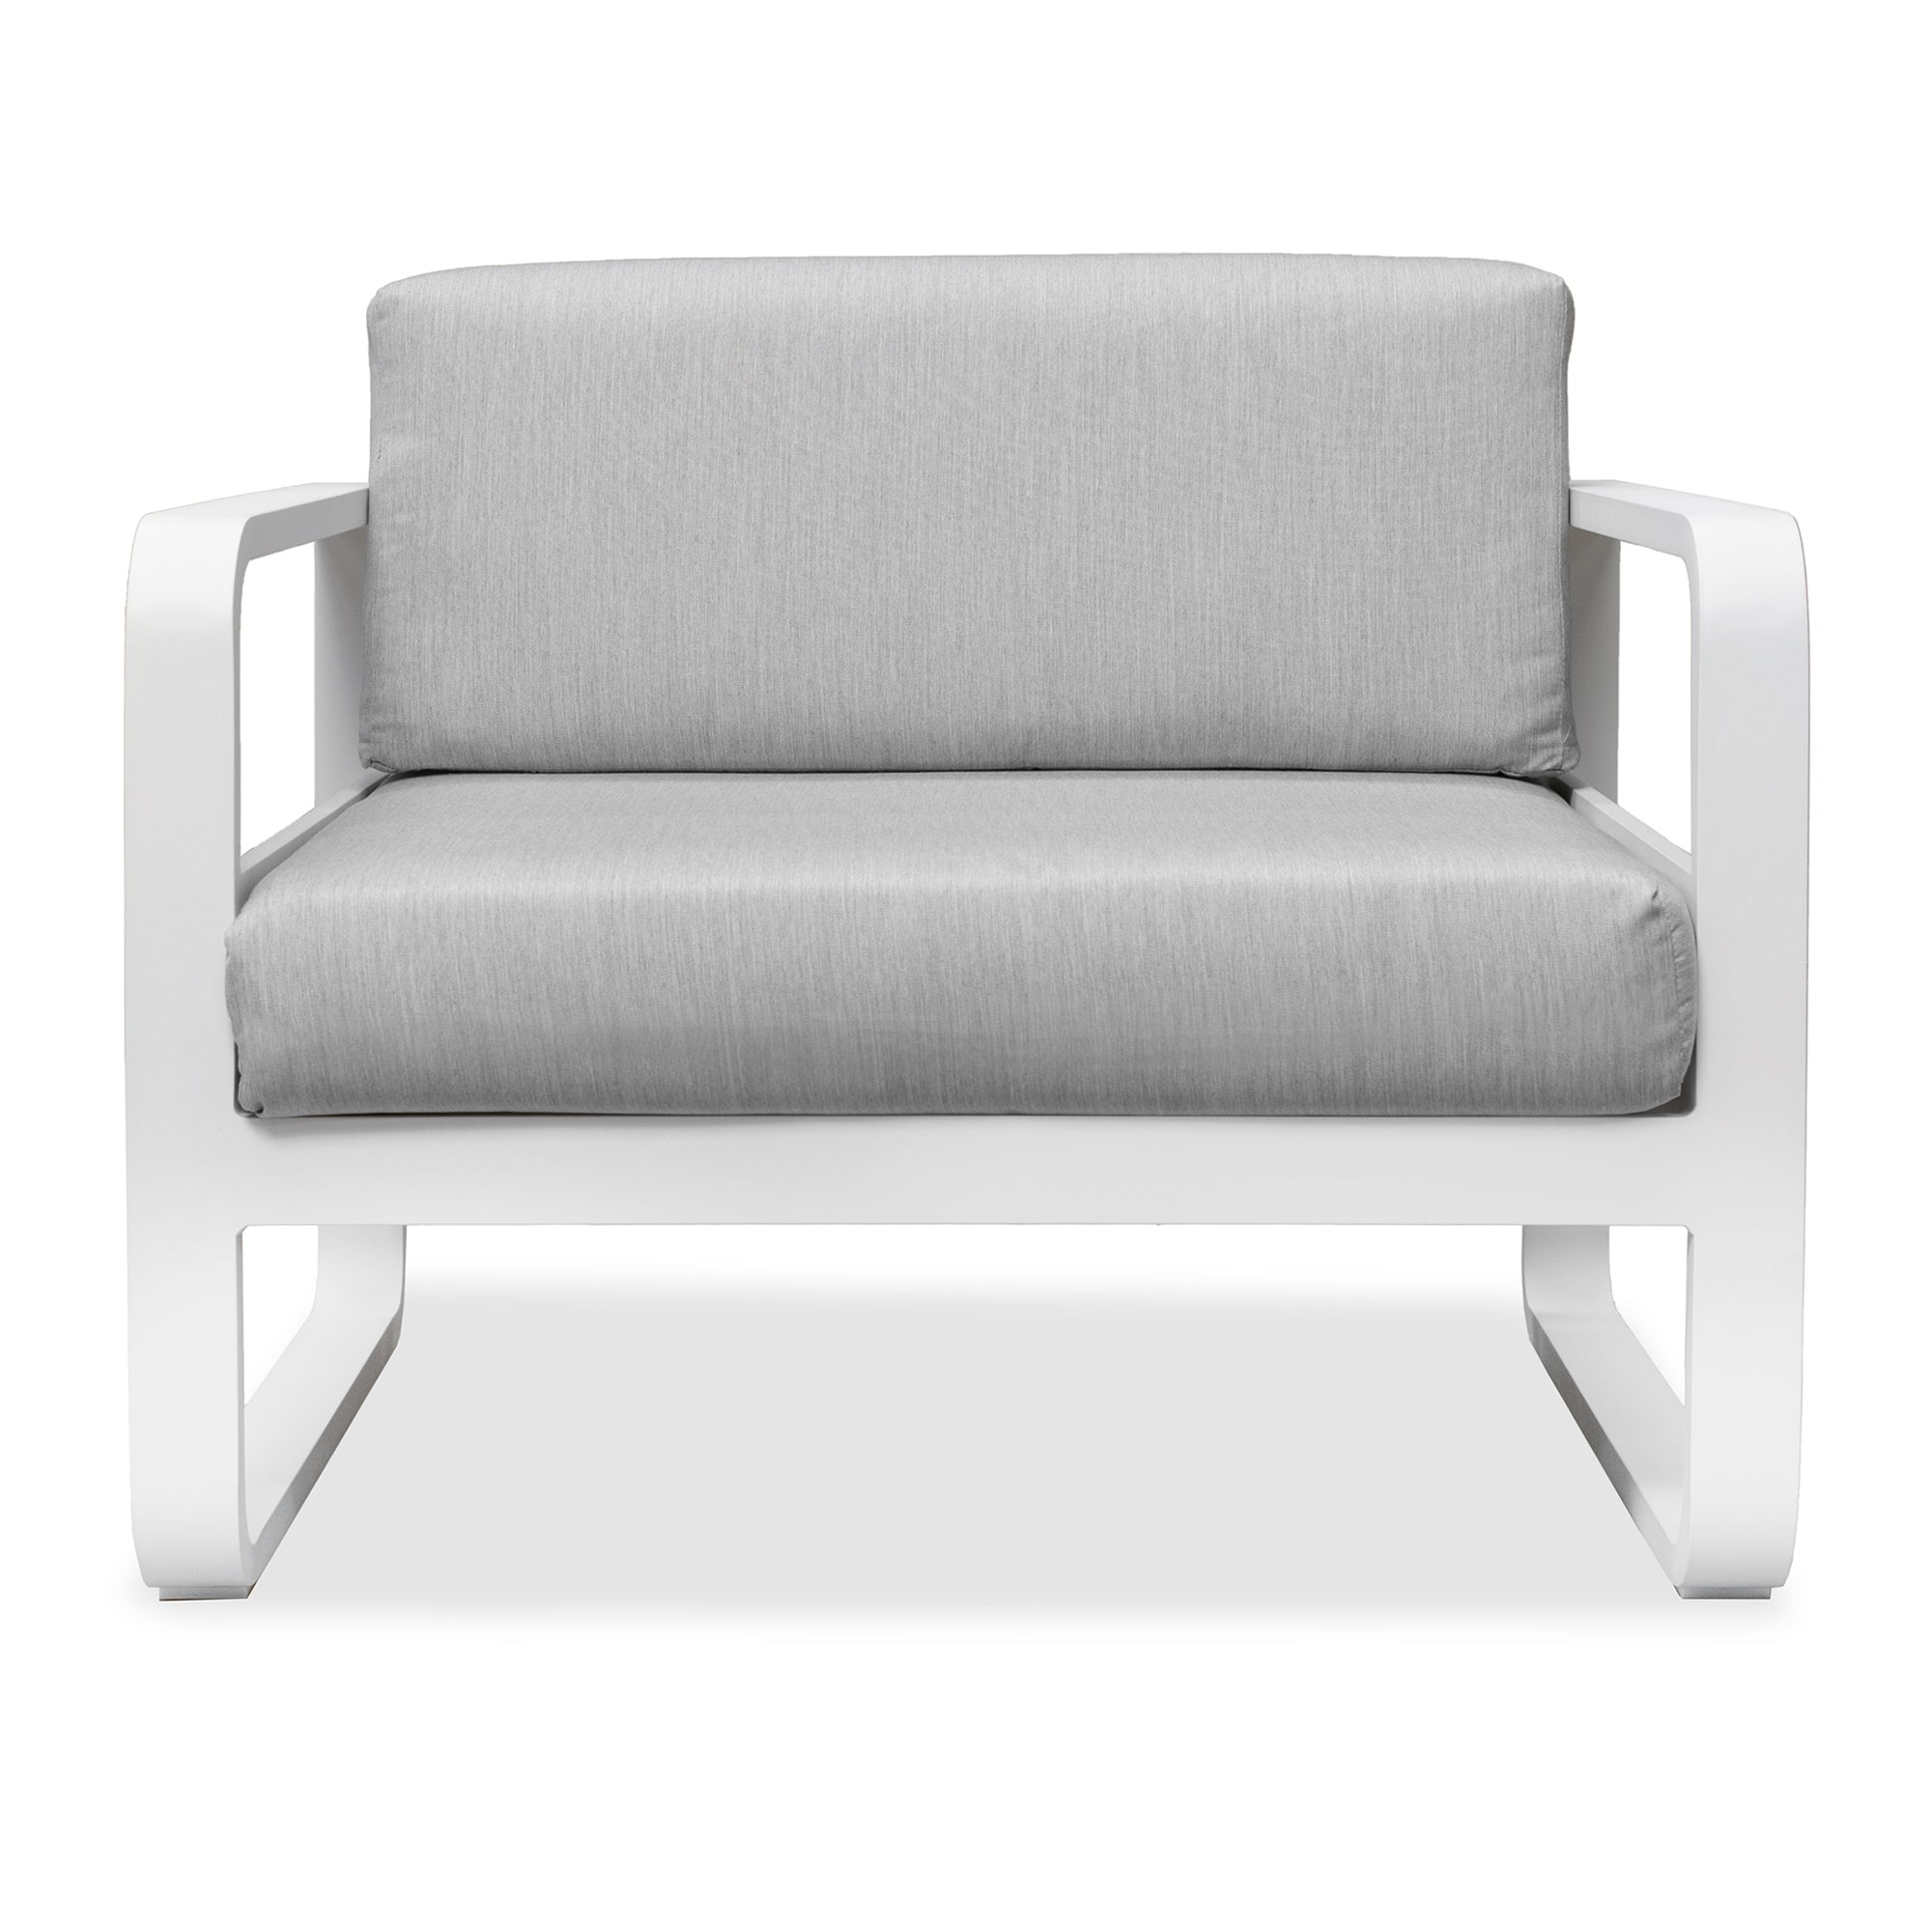 Eleve Outdoor Single Sofa, Sofa - Home-Buy Interiors